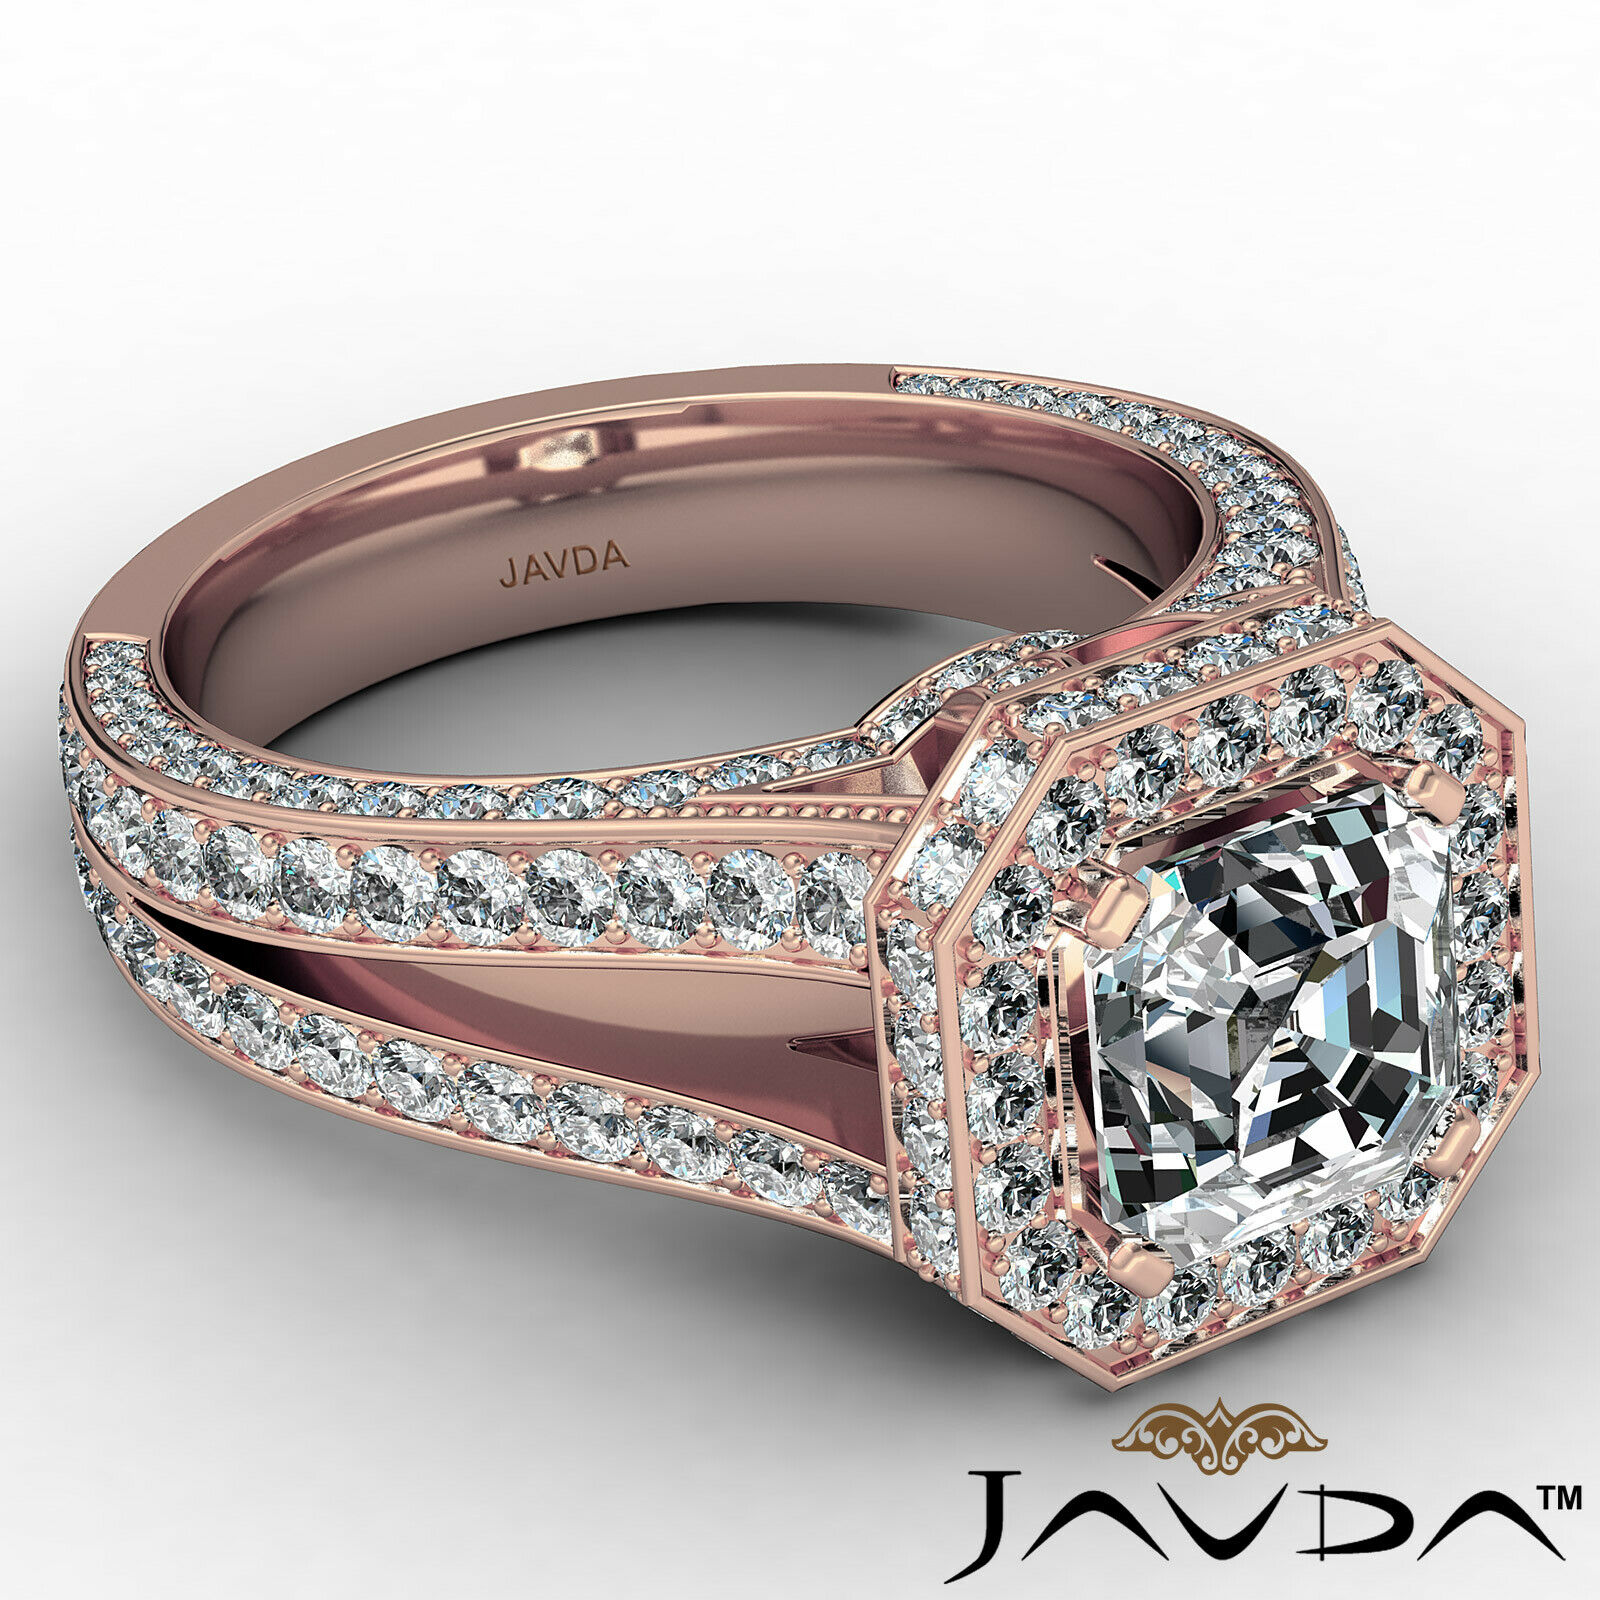 Halo Asscher Diamond Engagement Ring GIA Certified G Color & SI2 clarity 2.4 ctw 8